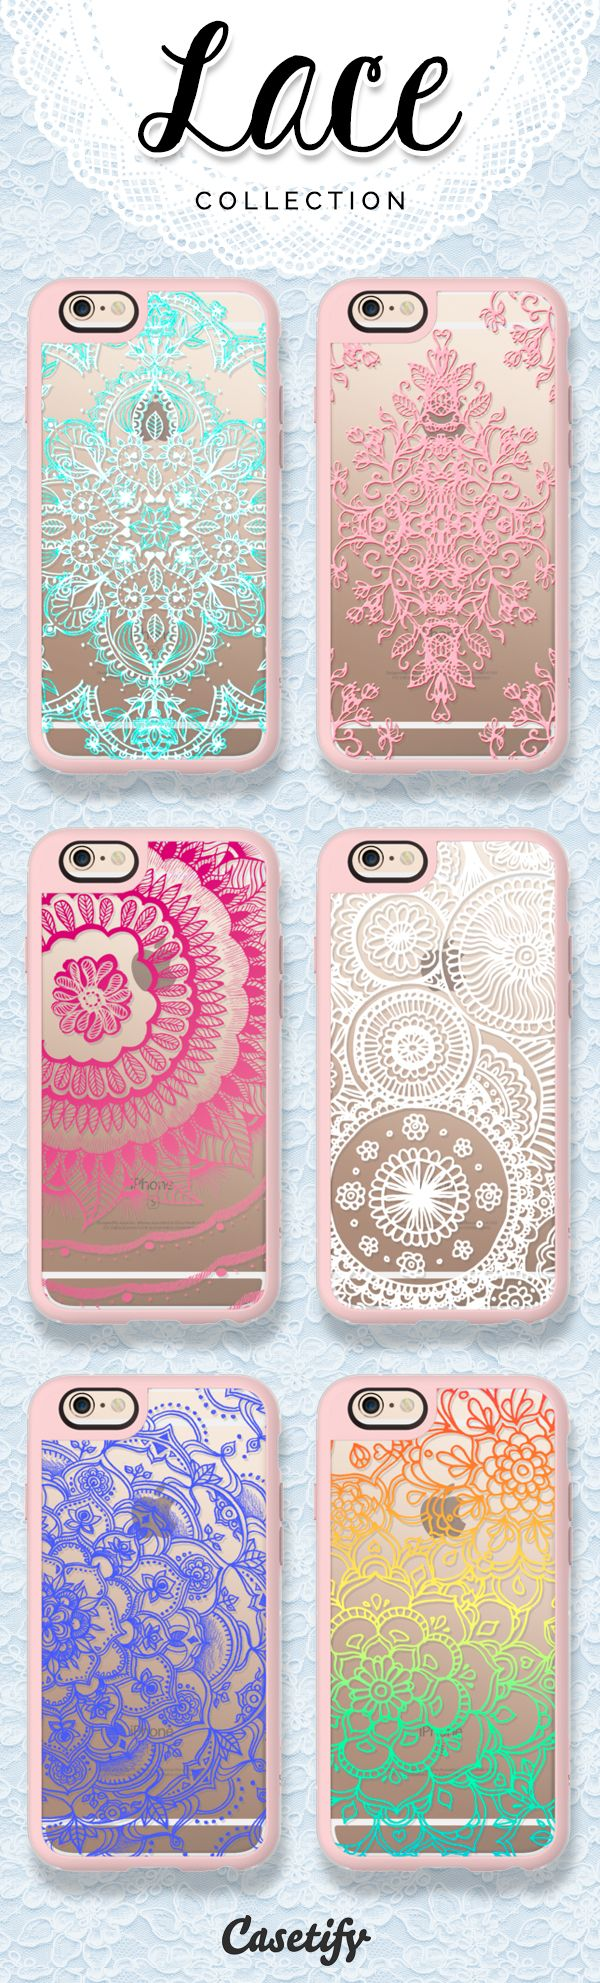 Love for lace! Check out our Lace collection now!   https://www.casetify.com/collections/lace#/ | @casetify